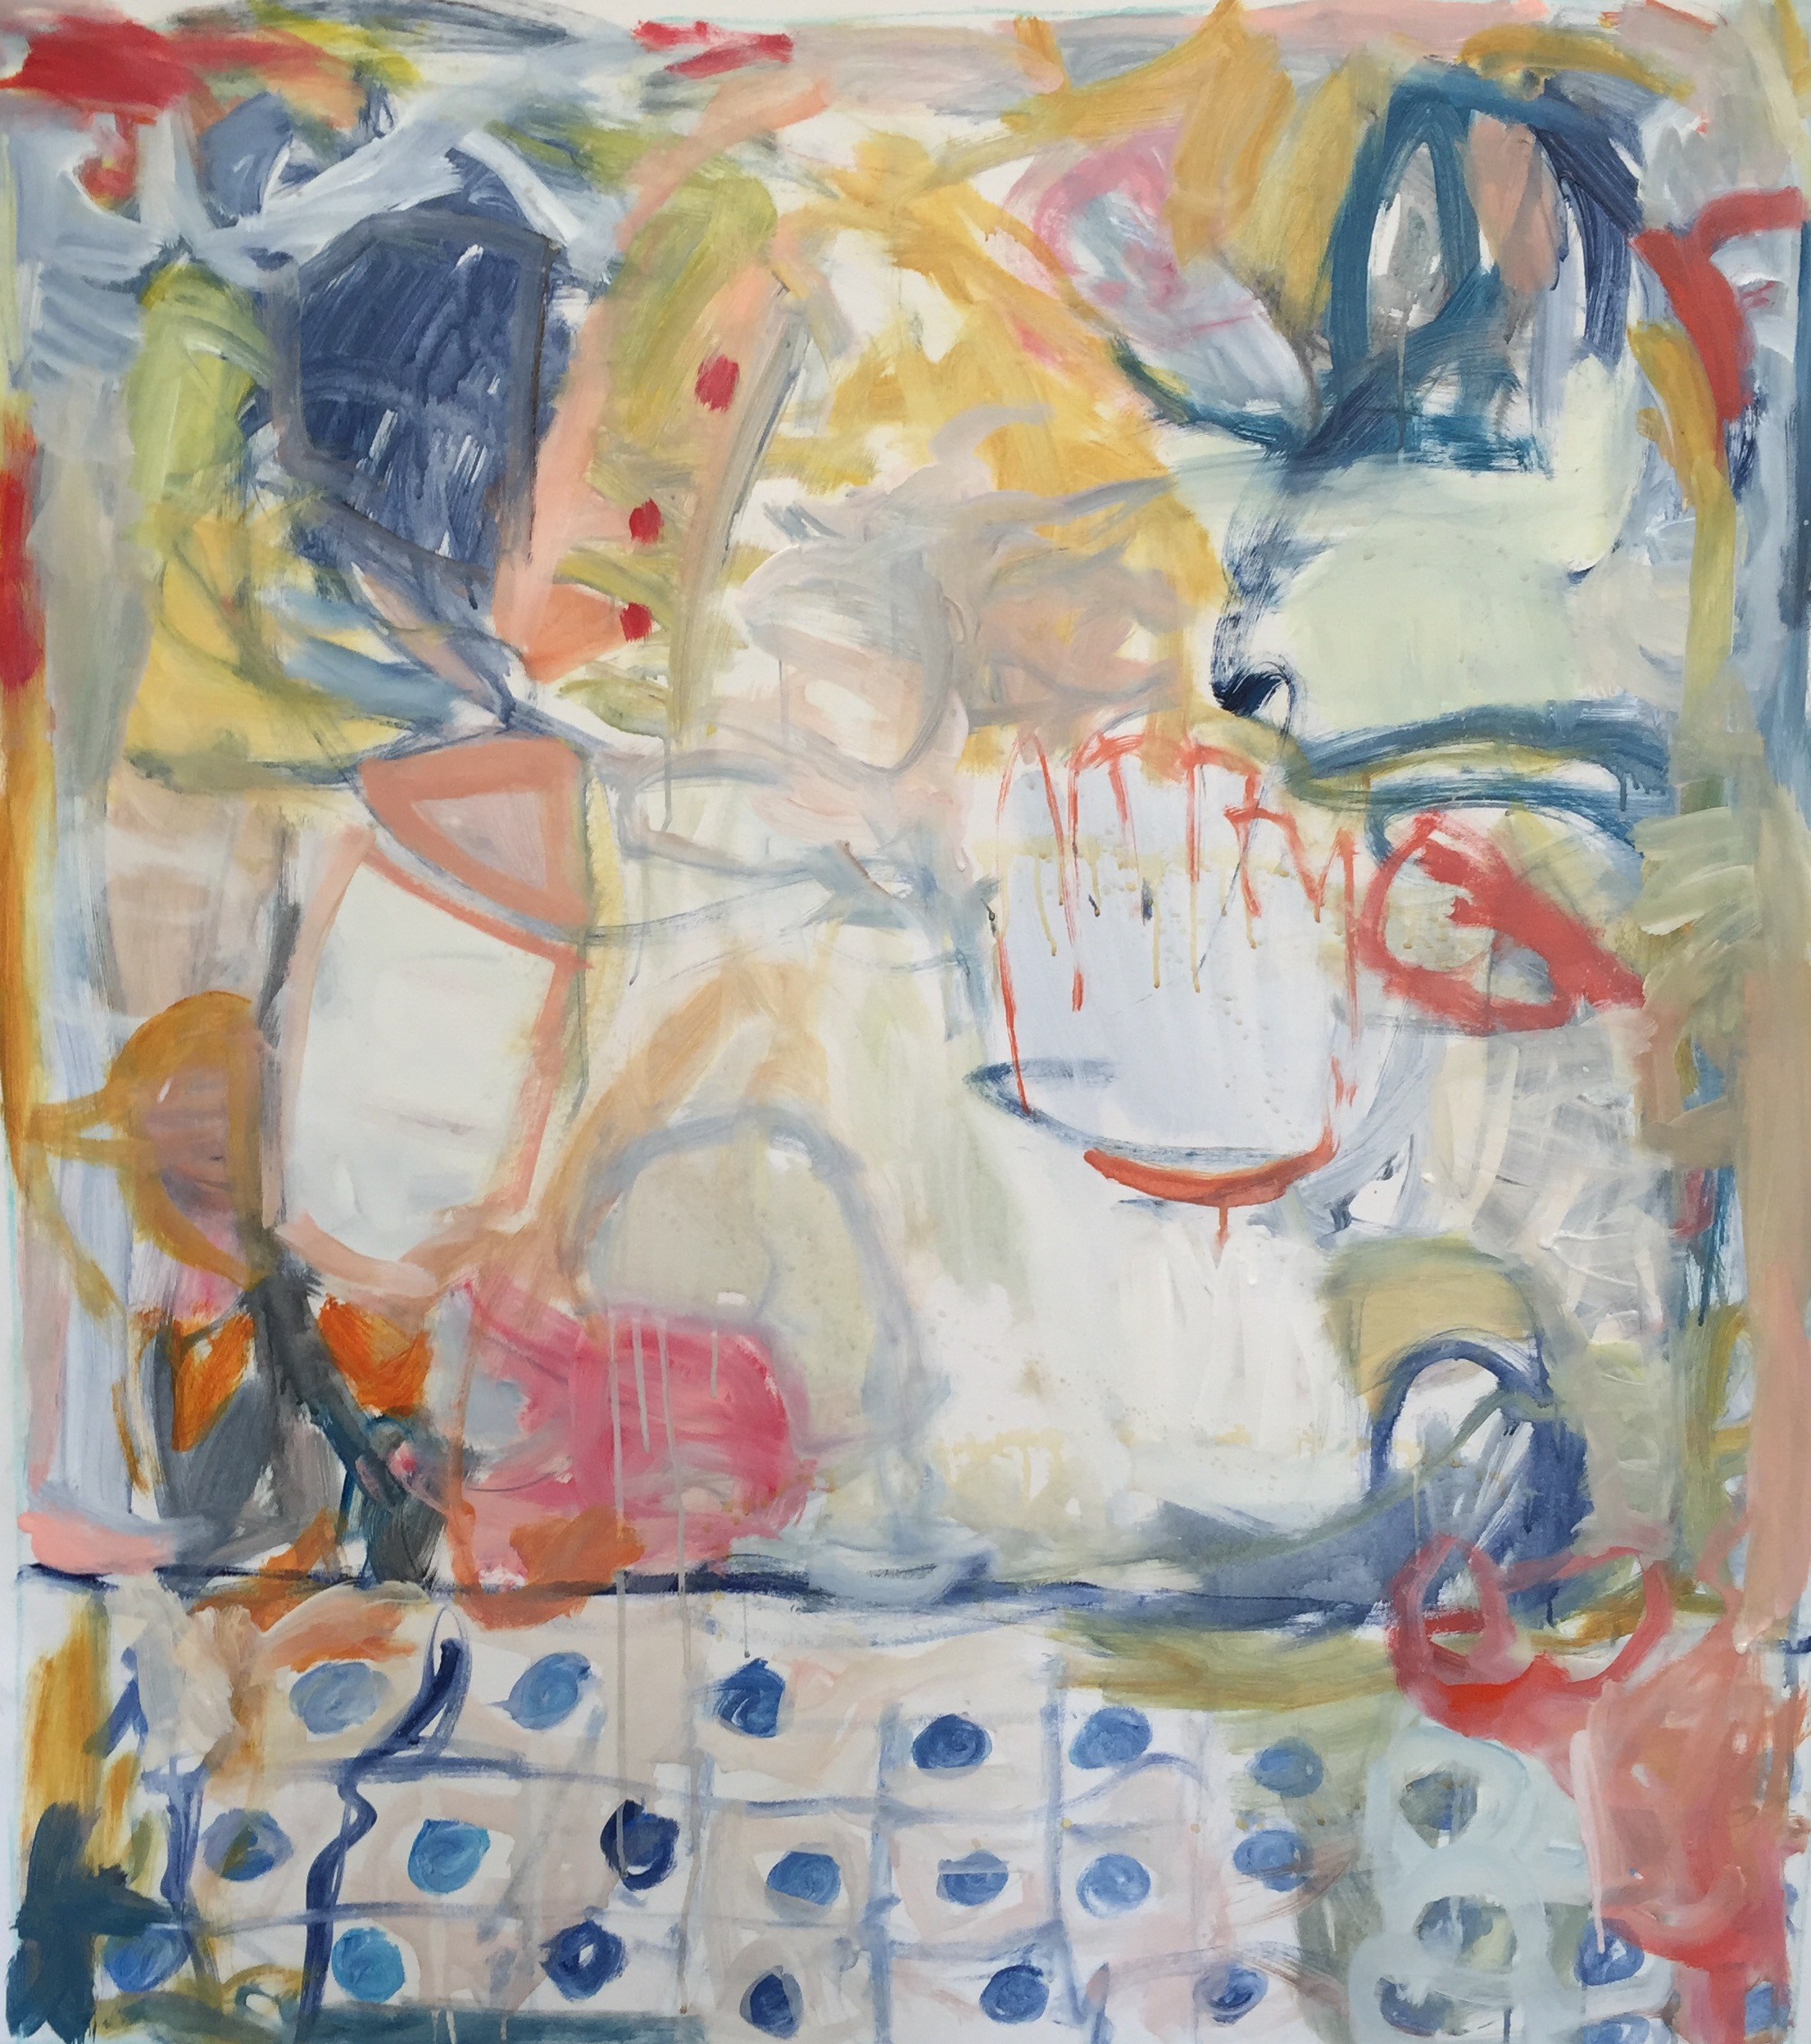 """Picnic II  44""""x38.5"""" mixed media on canvas  SOLD 